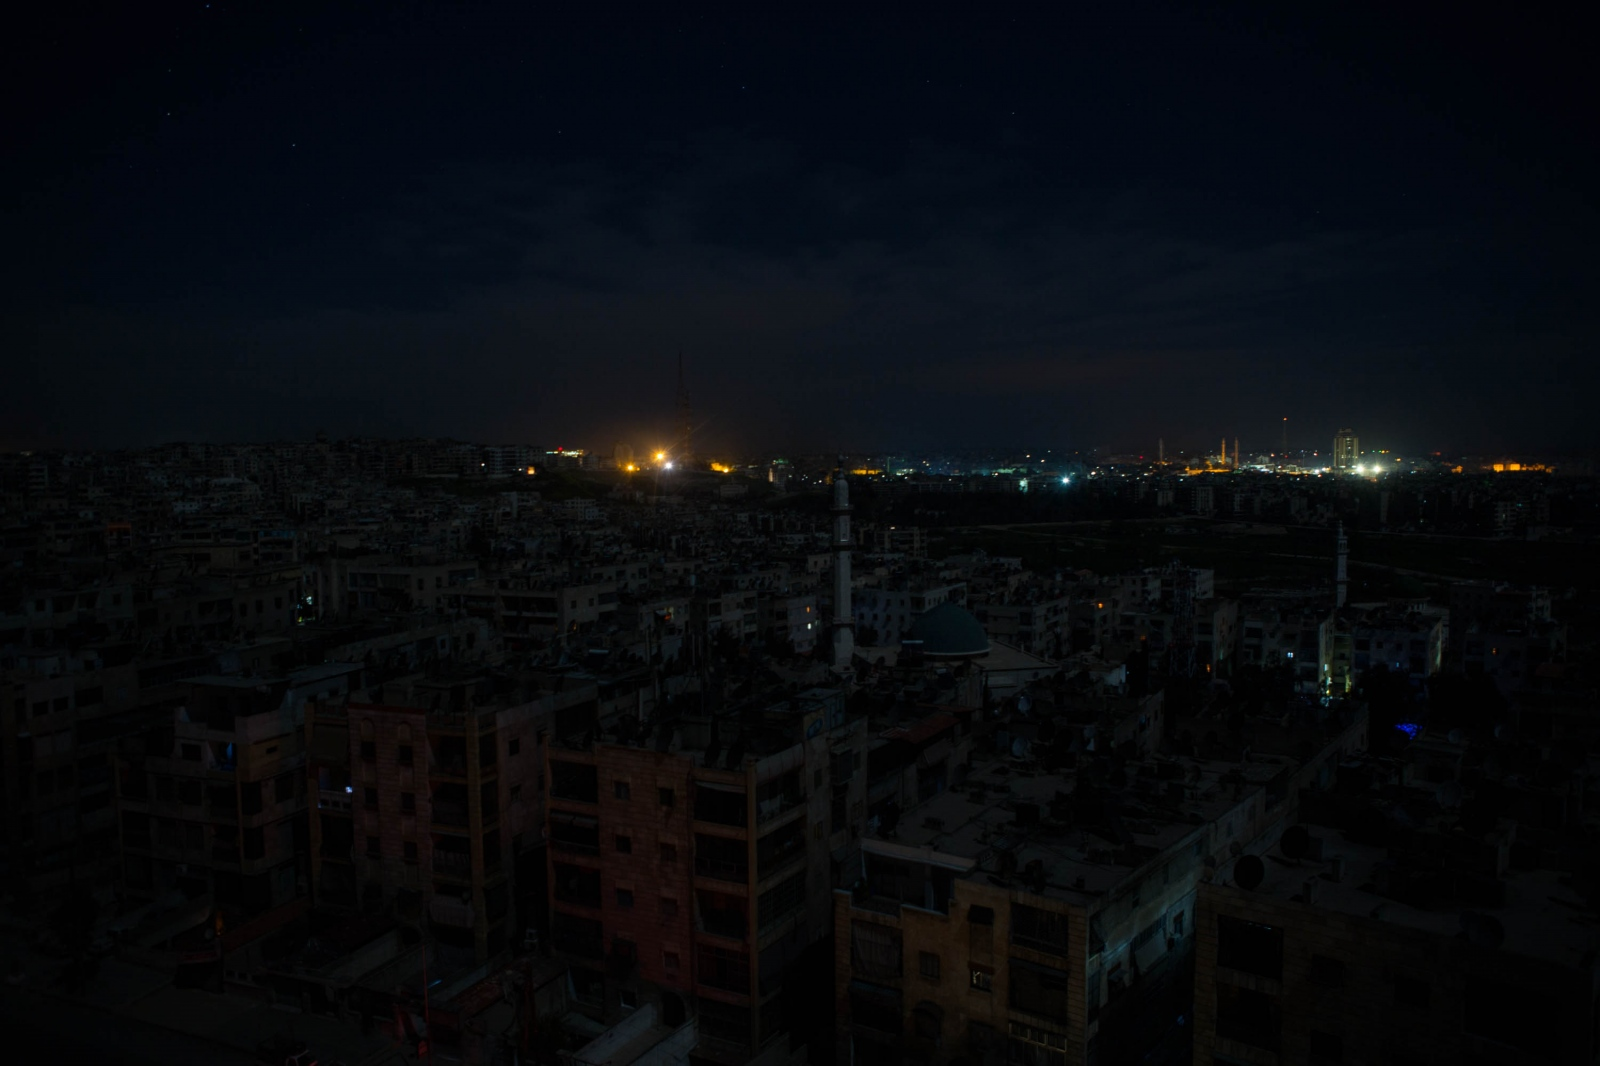 Opposition-held Aleppo, foreground, is seen against a brightly lit government held area in the horizon. Aleppo, Syria. 2013.